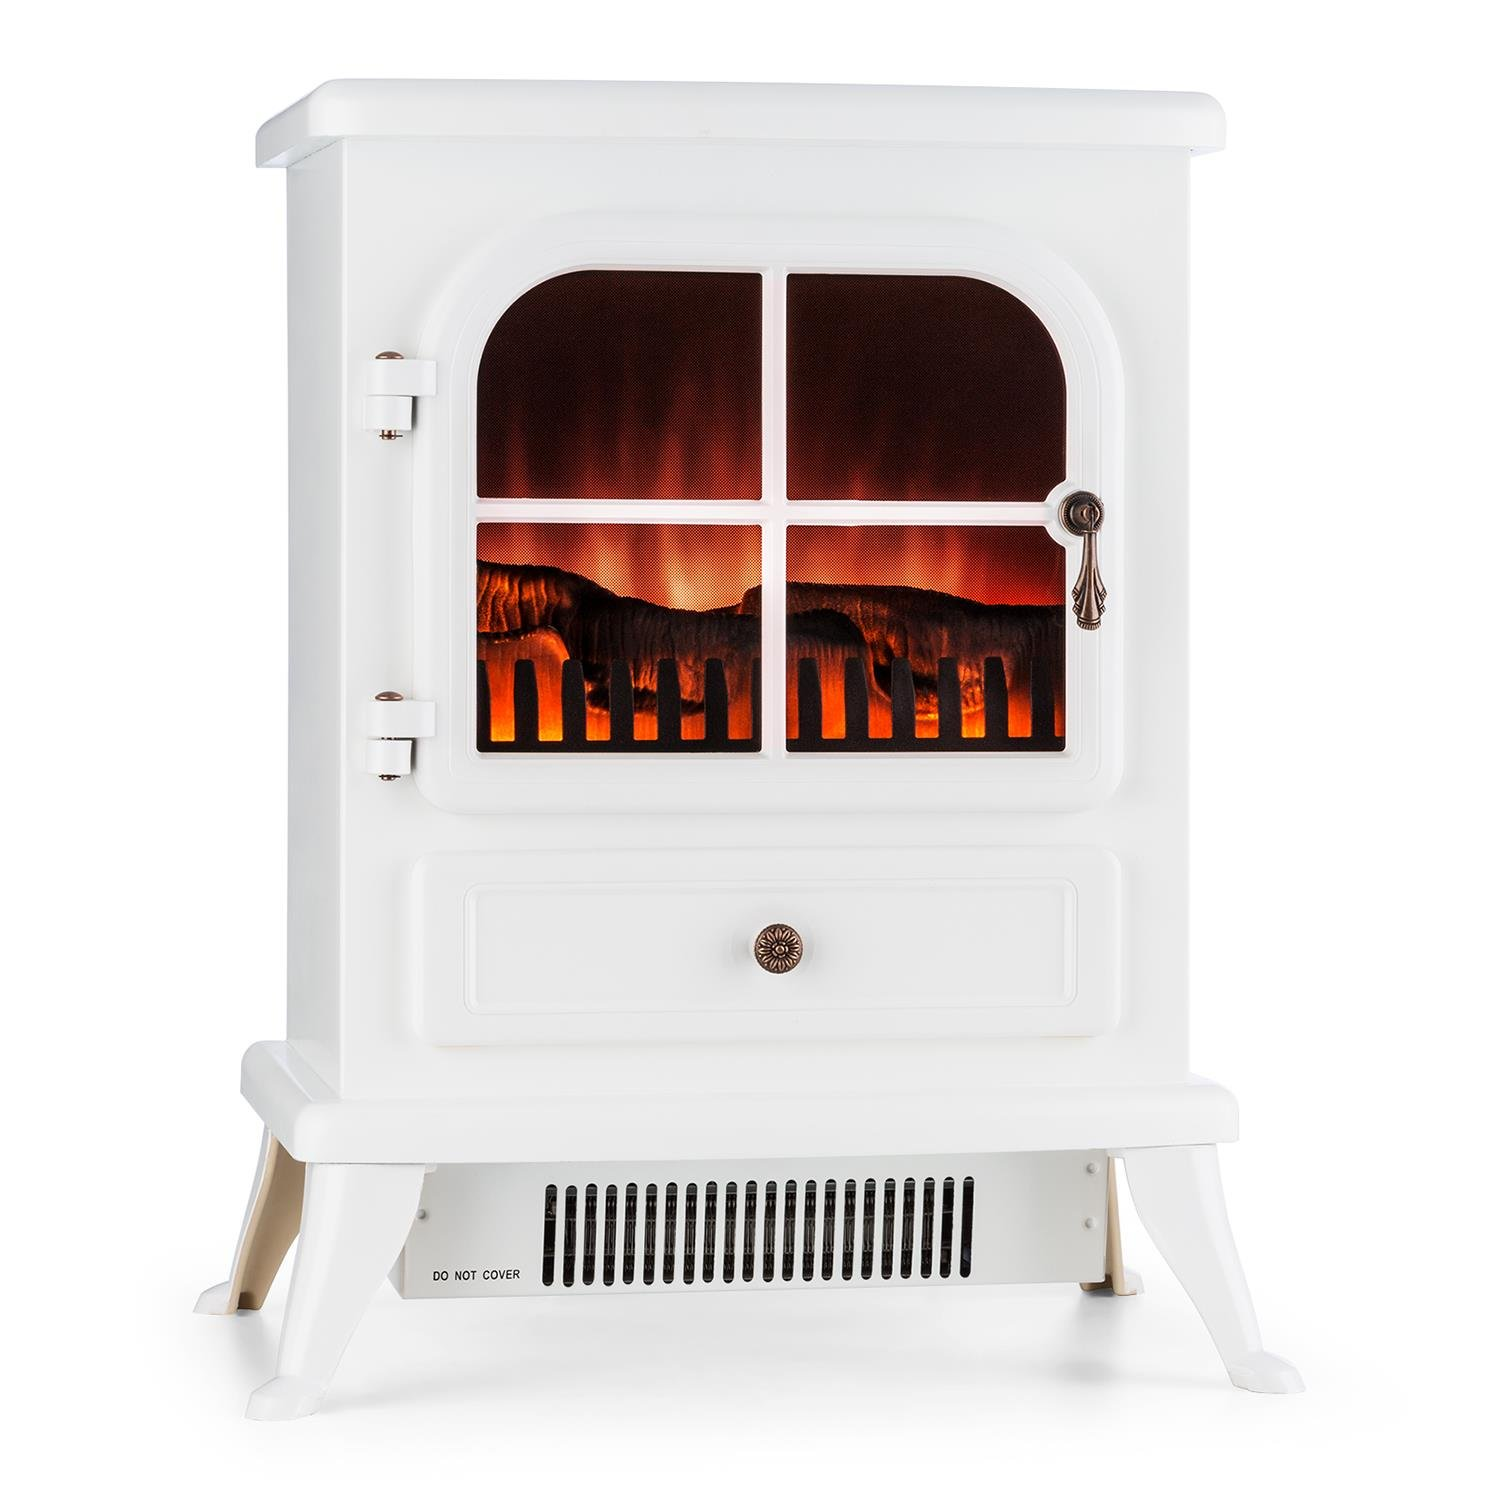 Klarstein St. Moritz Electric Fireplace • Heater • 1800 W • Flame Simulation • Built-In Fan Heater • Glass Front Panel • Romantic Atmosphere • Beautiful Nostalgic Design • Easy-Mounting Feet • Continuously Adjustable Flame Brightness • White